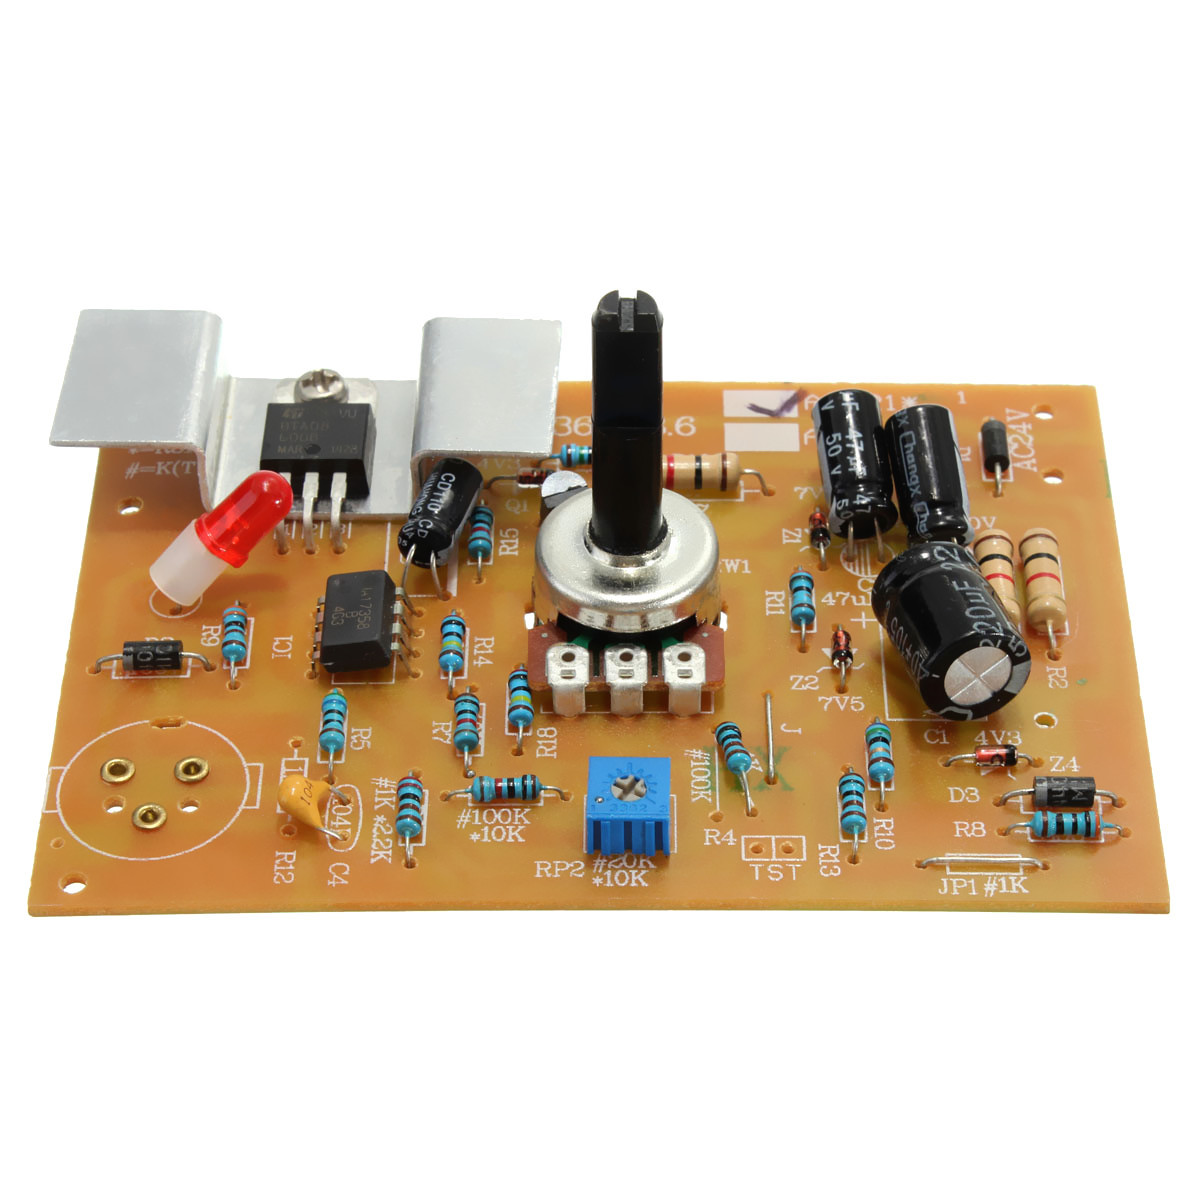 soldering iron station control board controller thermostat a1321 for hakko 936 intl. Black Bedroom Furniture Sets. Home Design Ideas